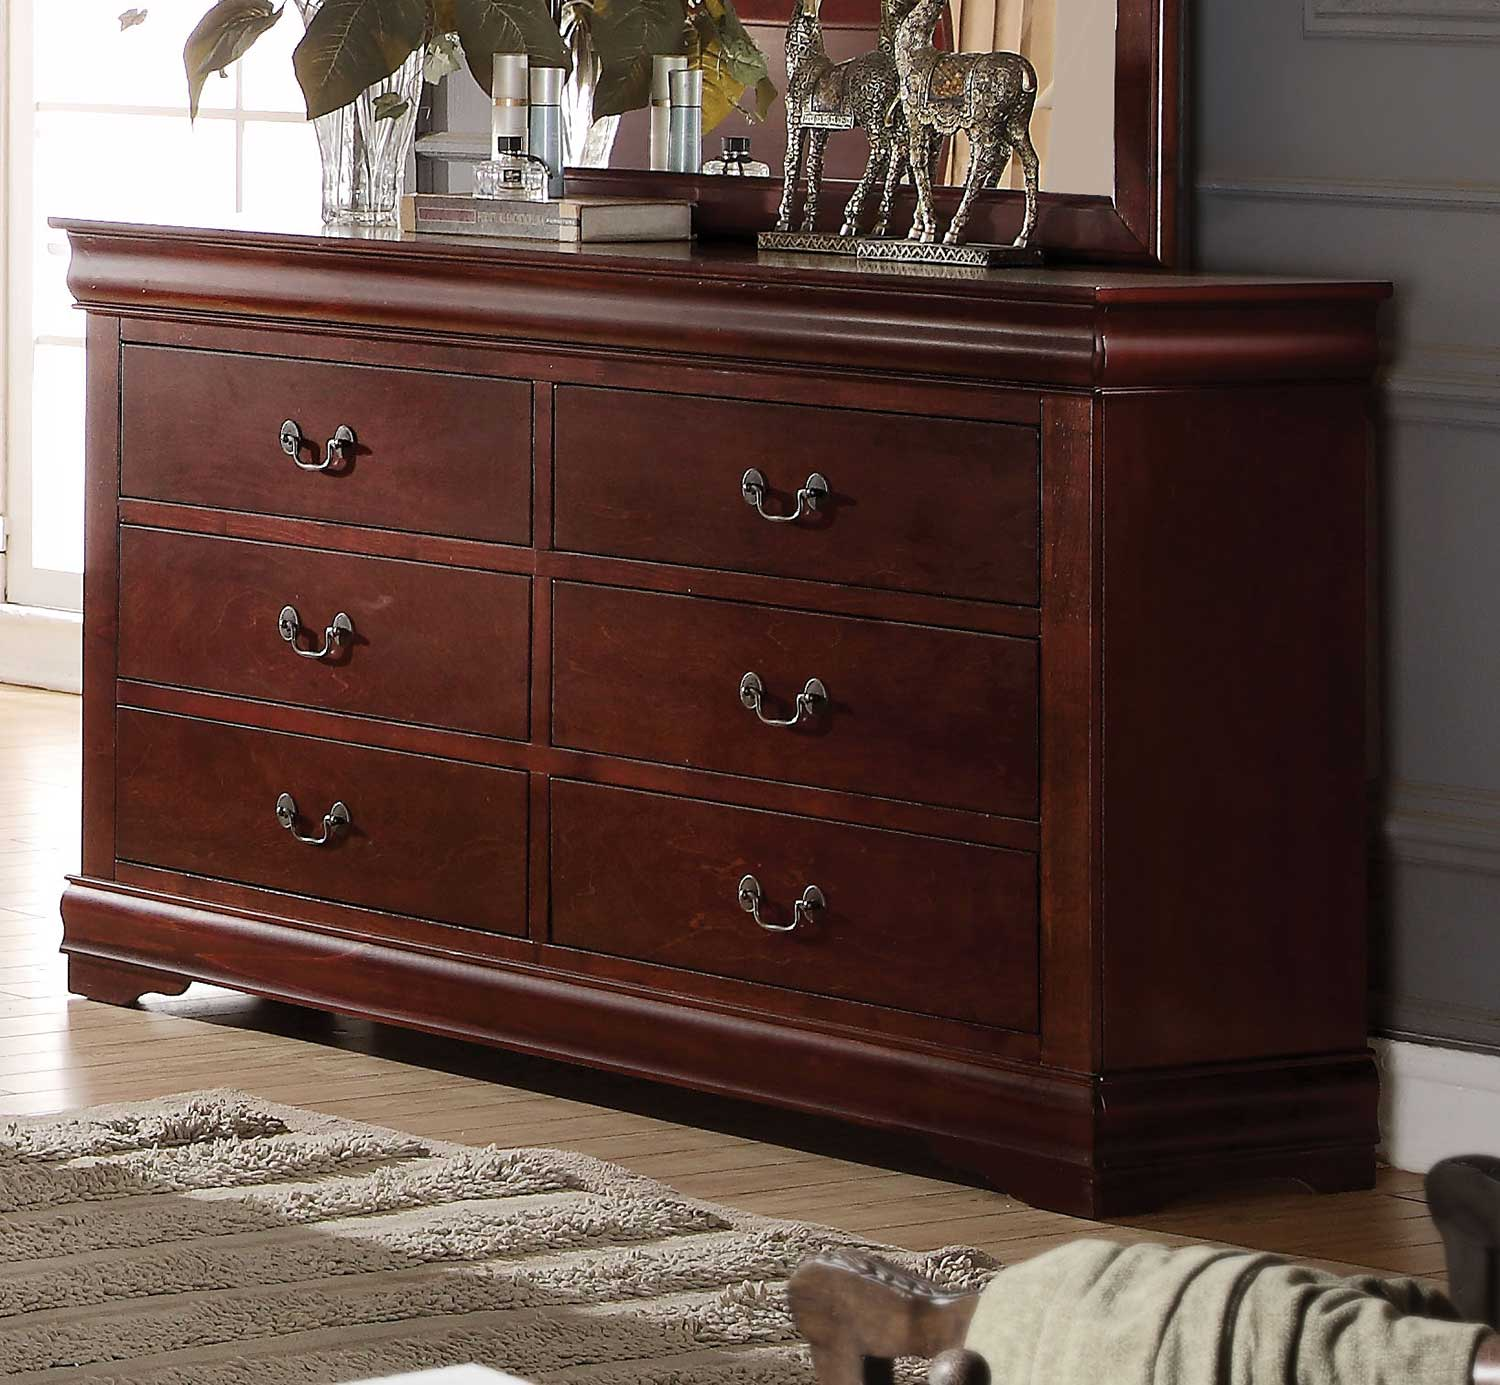 Acme Louis Philippe Dresser - Cherry